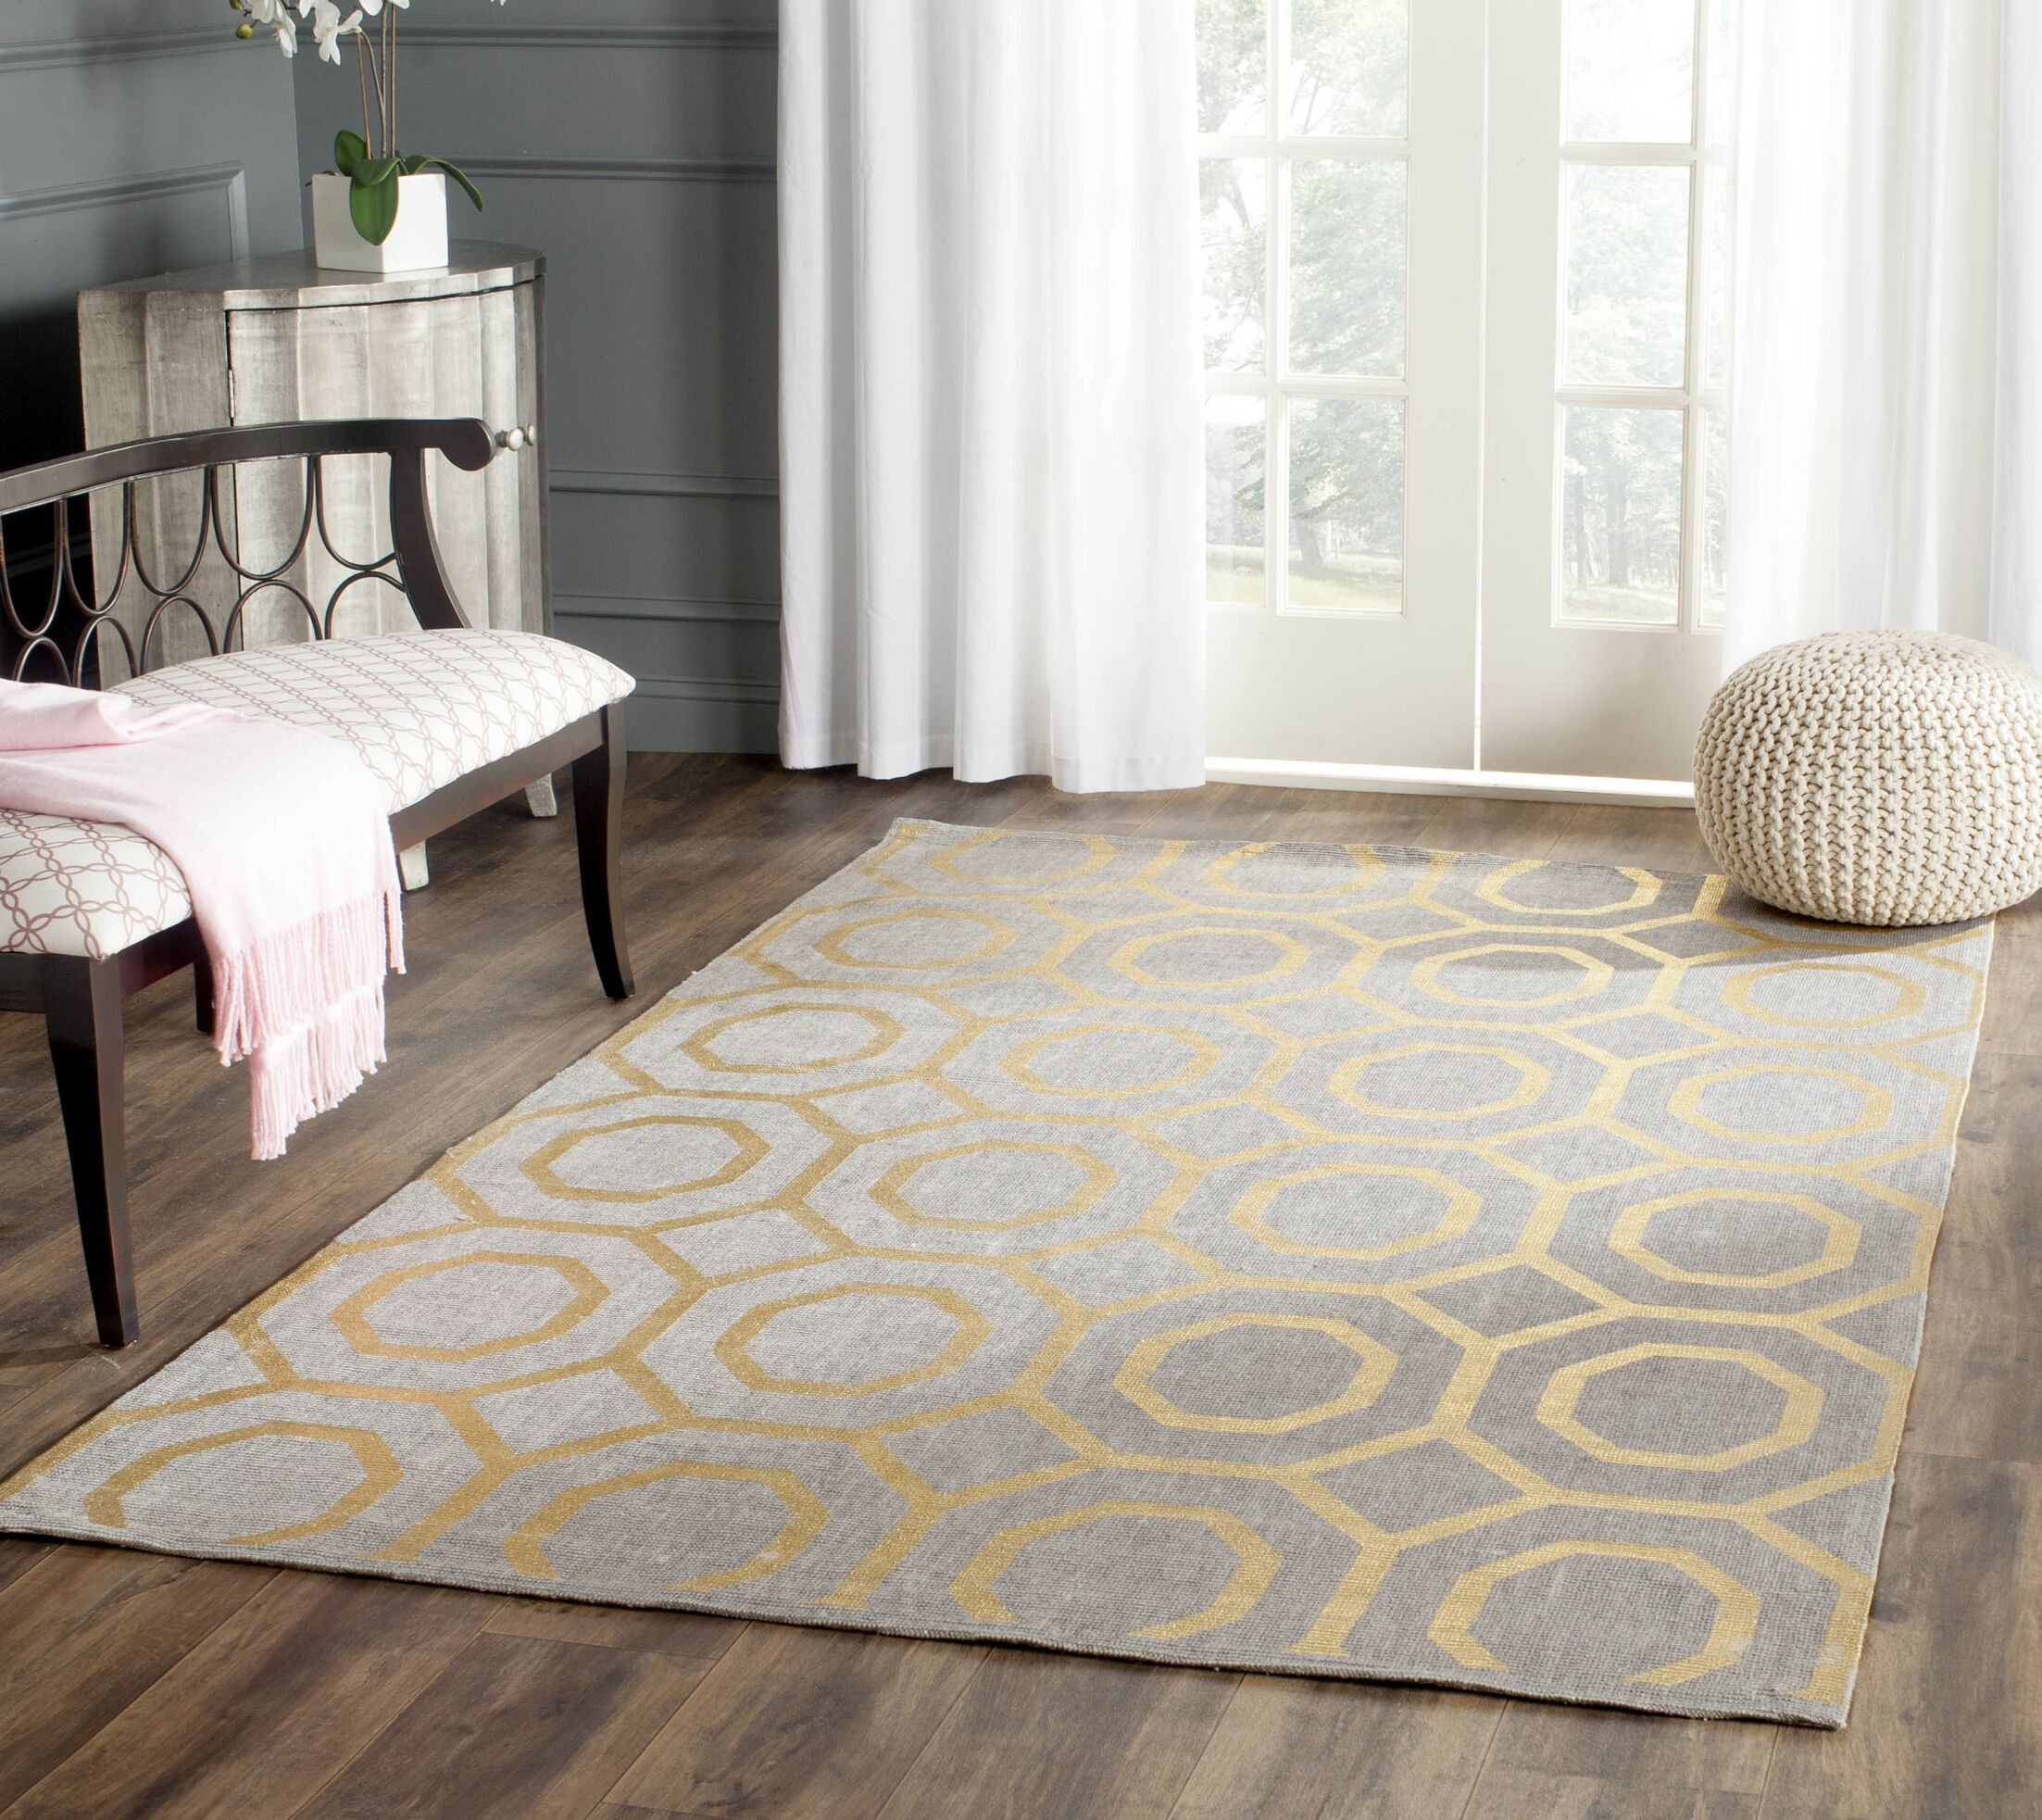 Columbus Circle Hand-Woven Brown/Ivory Area Rug Rug Size: Round 6'